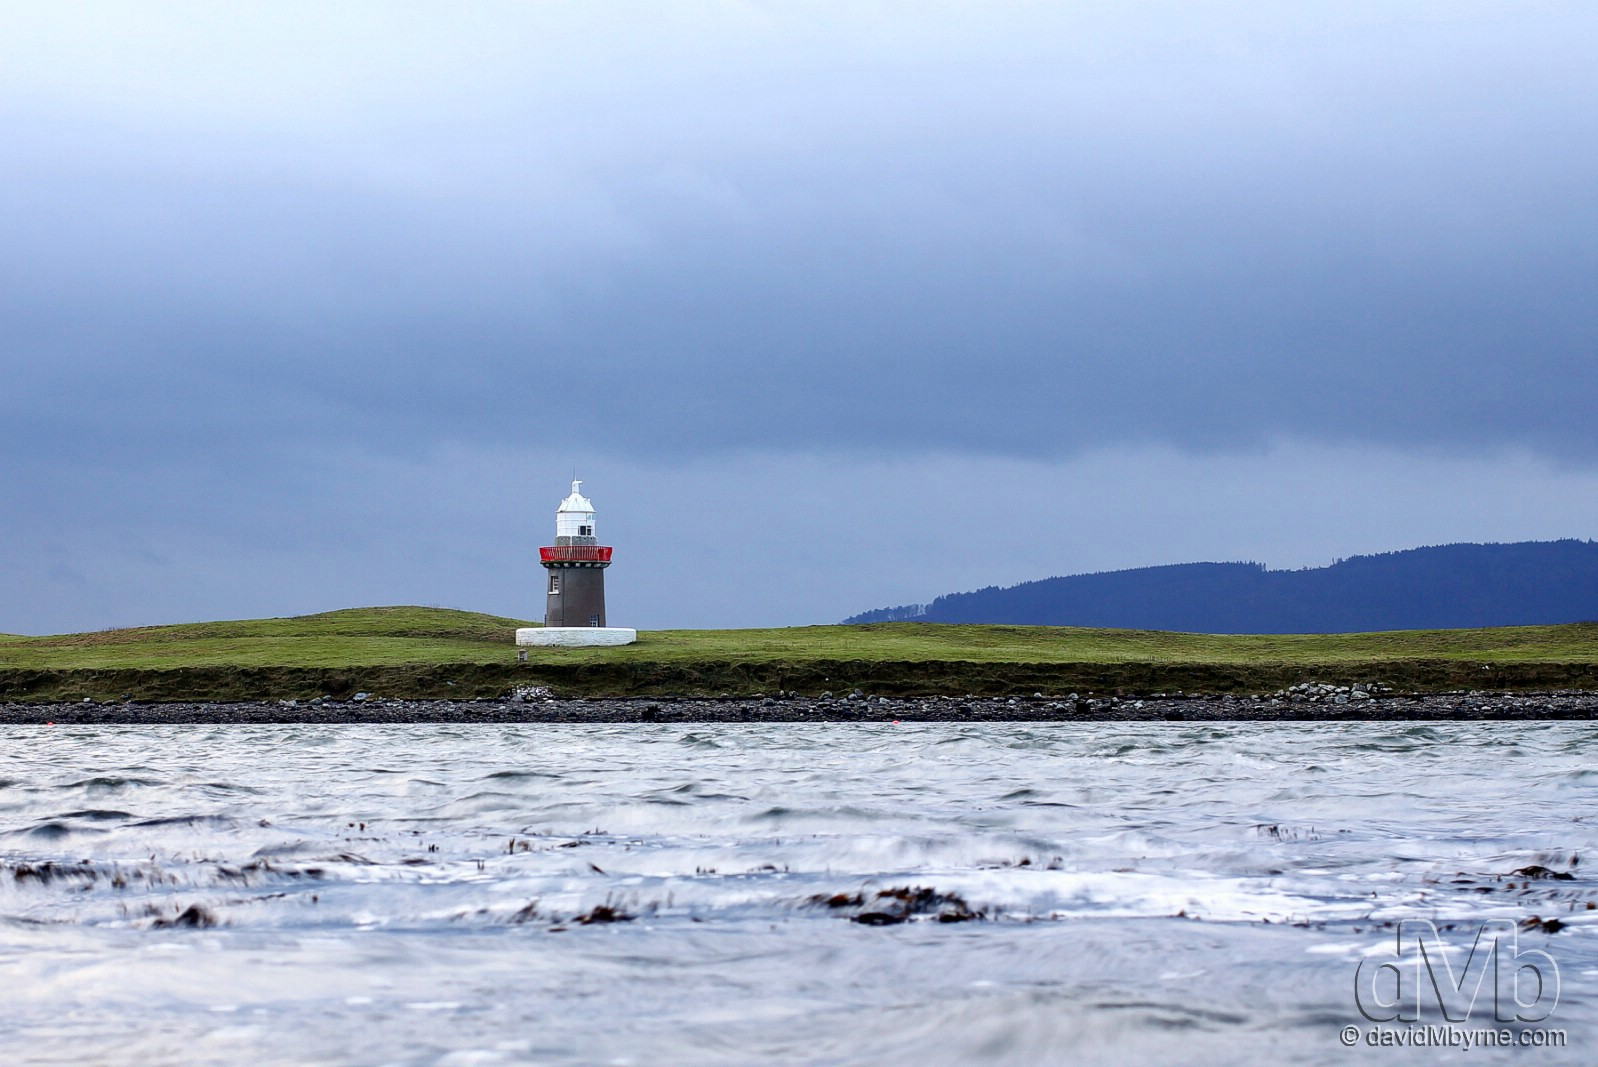 A lighthouse near Rosses Point in County Sligo, Ireland. January 5th 2013 (EOS 60D || Canon 40mm f/2.8 || 40mm, 1/8sec, f/7.1,  iso100)